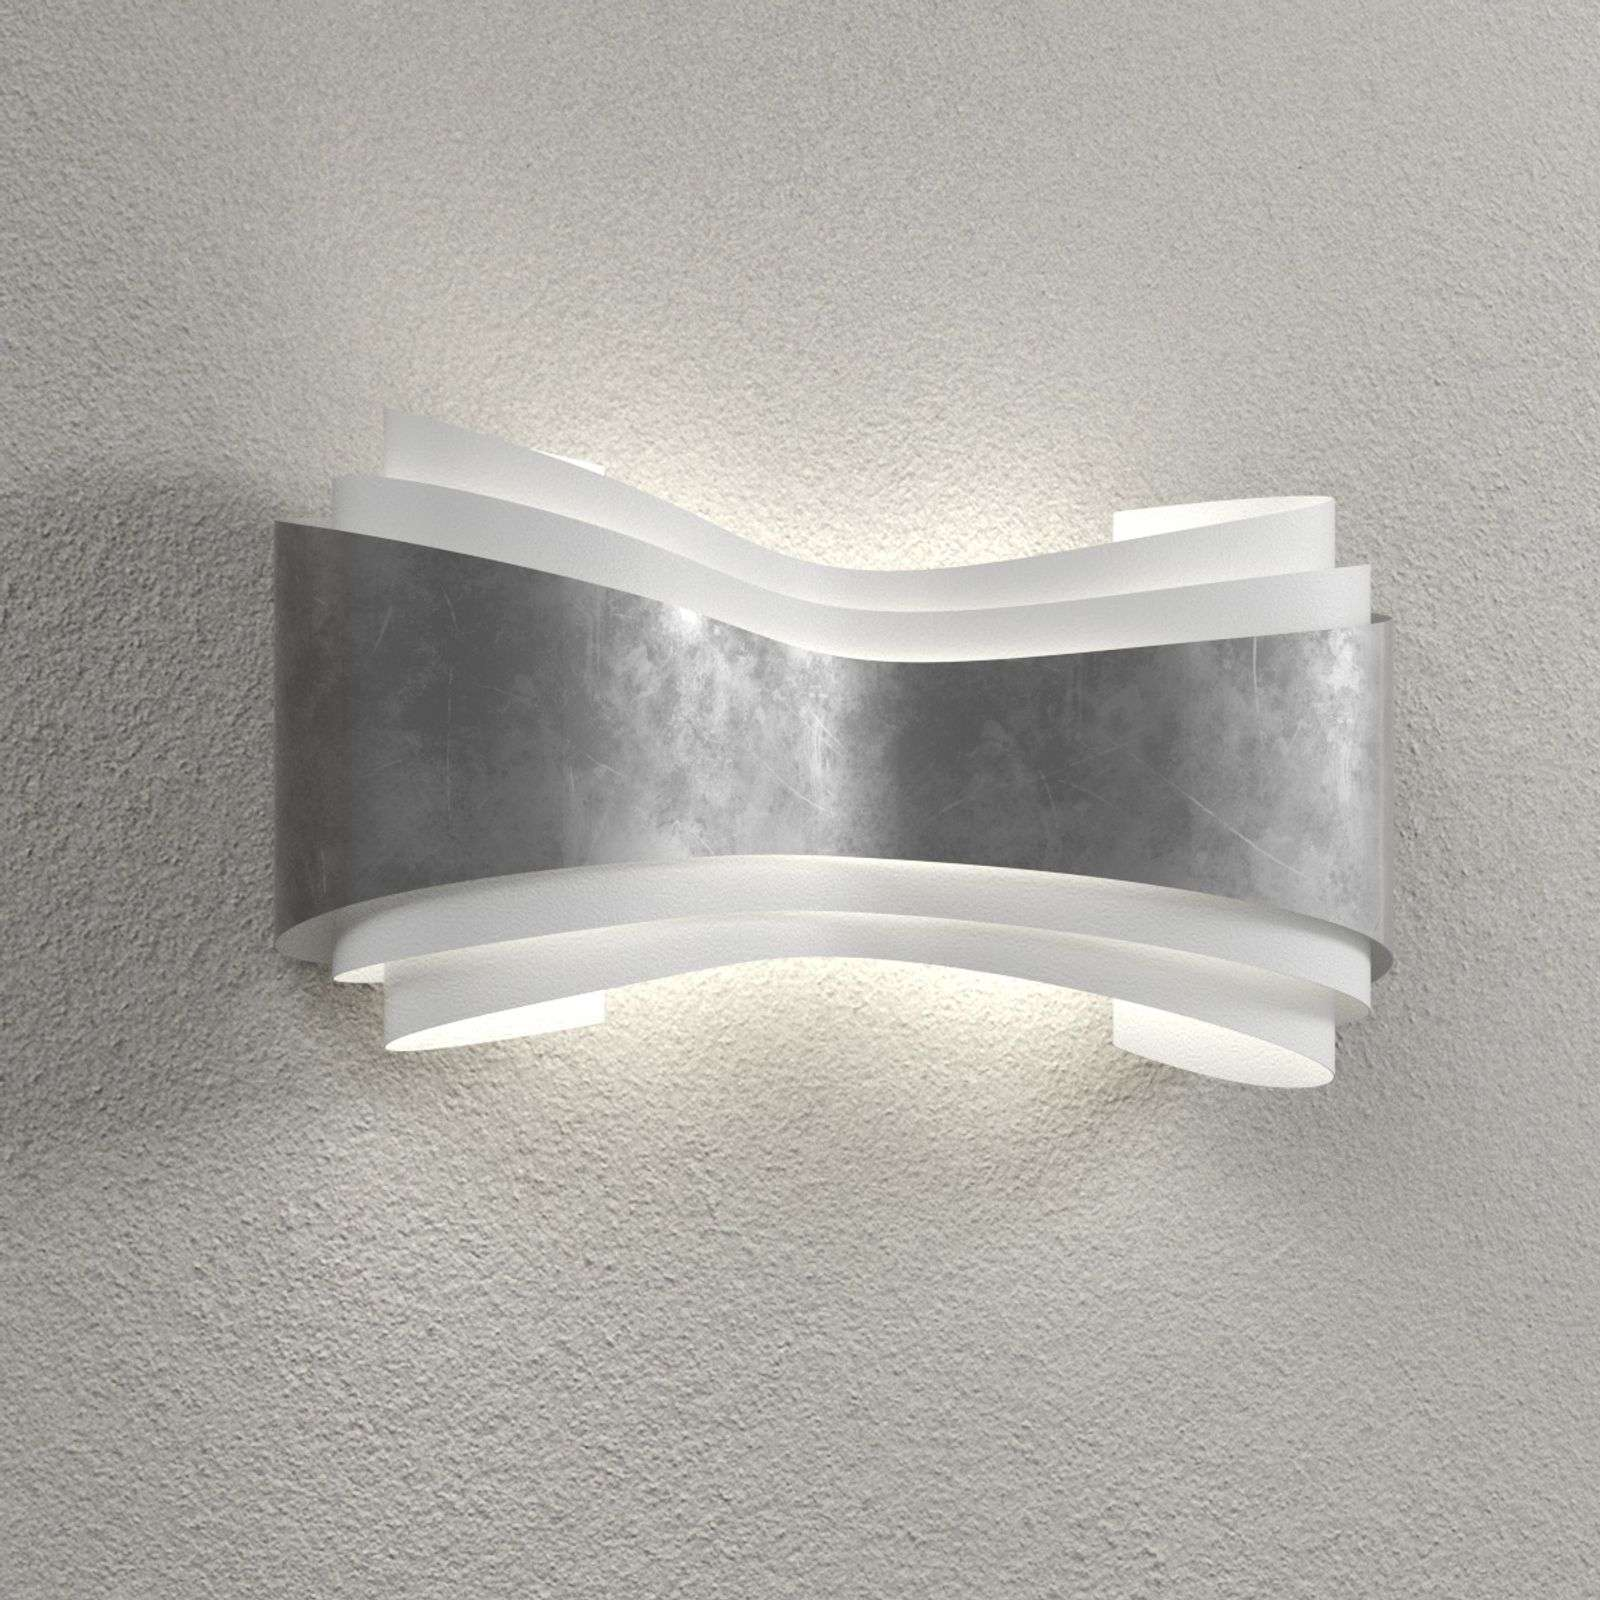 Ionica - lámpara de pared LED con pan de plata